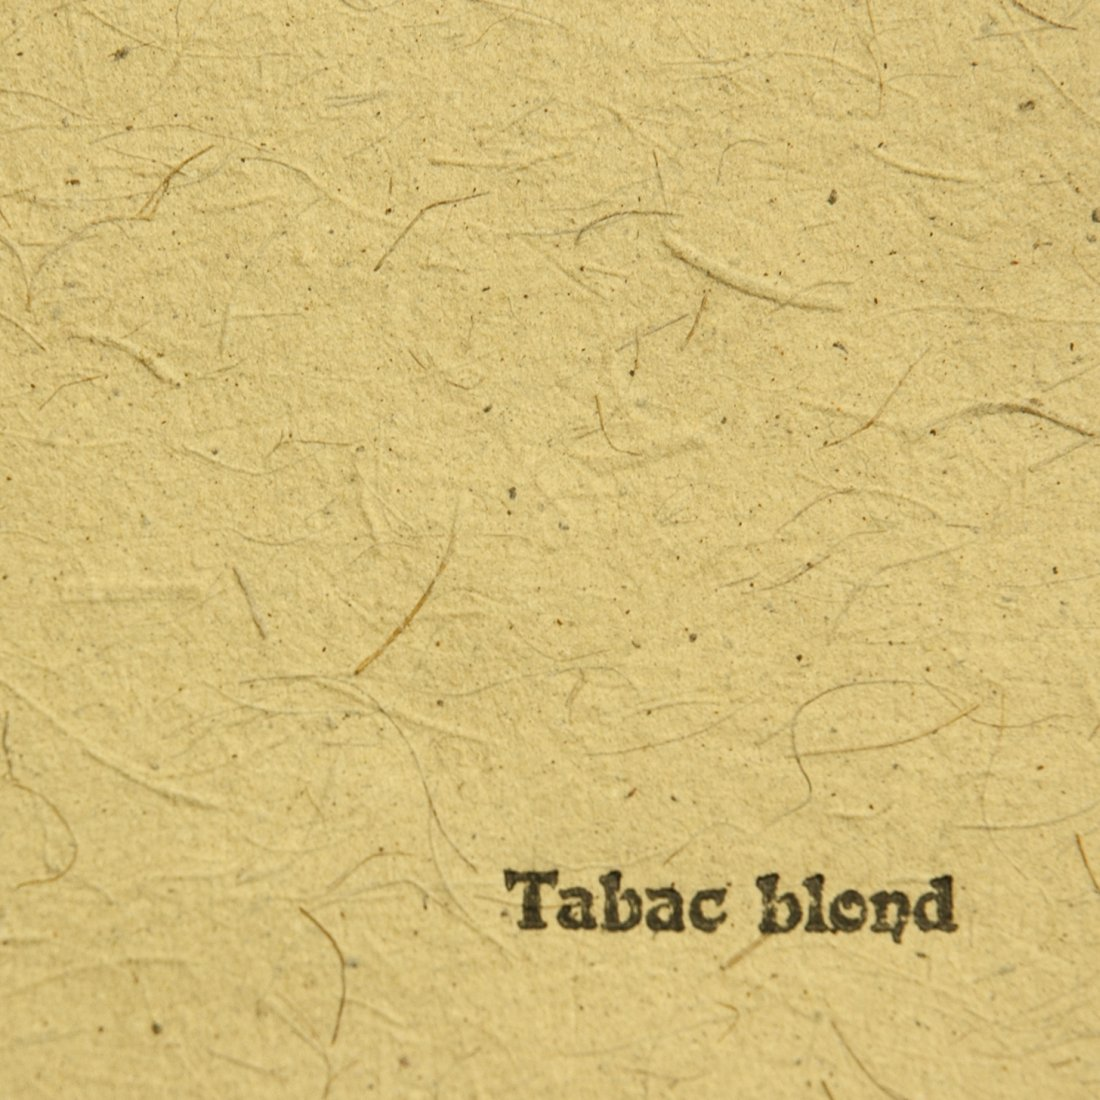 TABAC BLOND 50*65